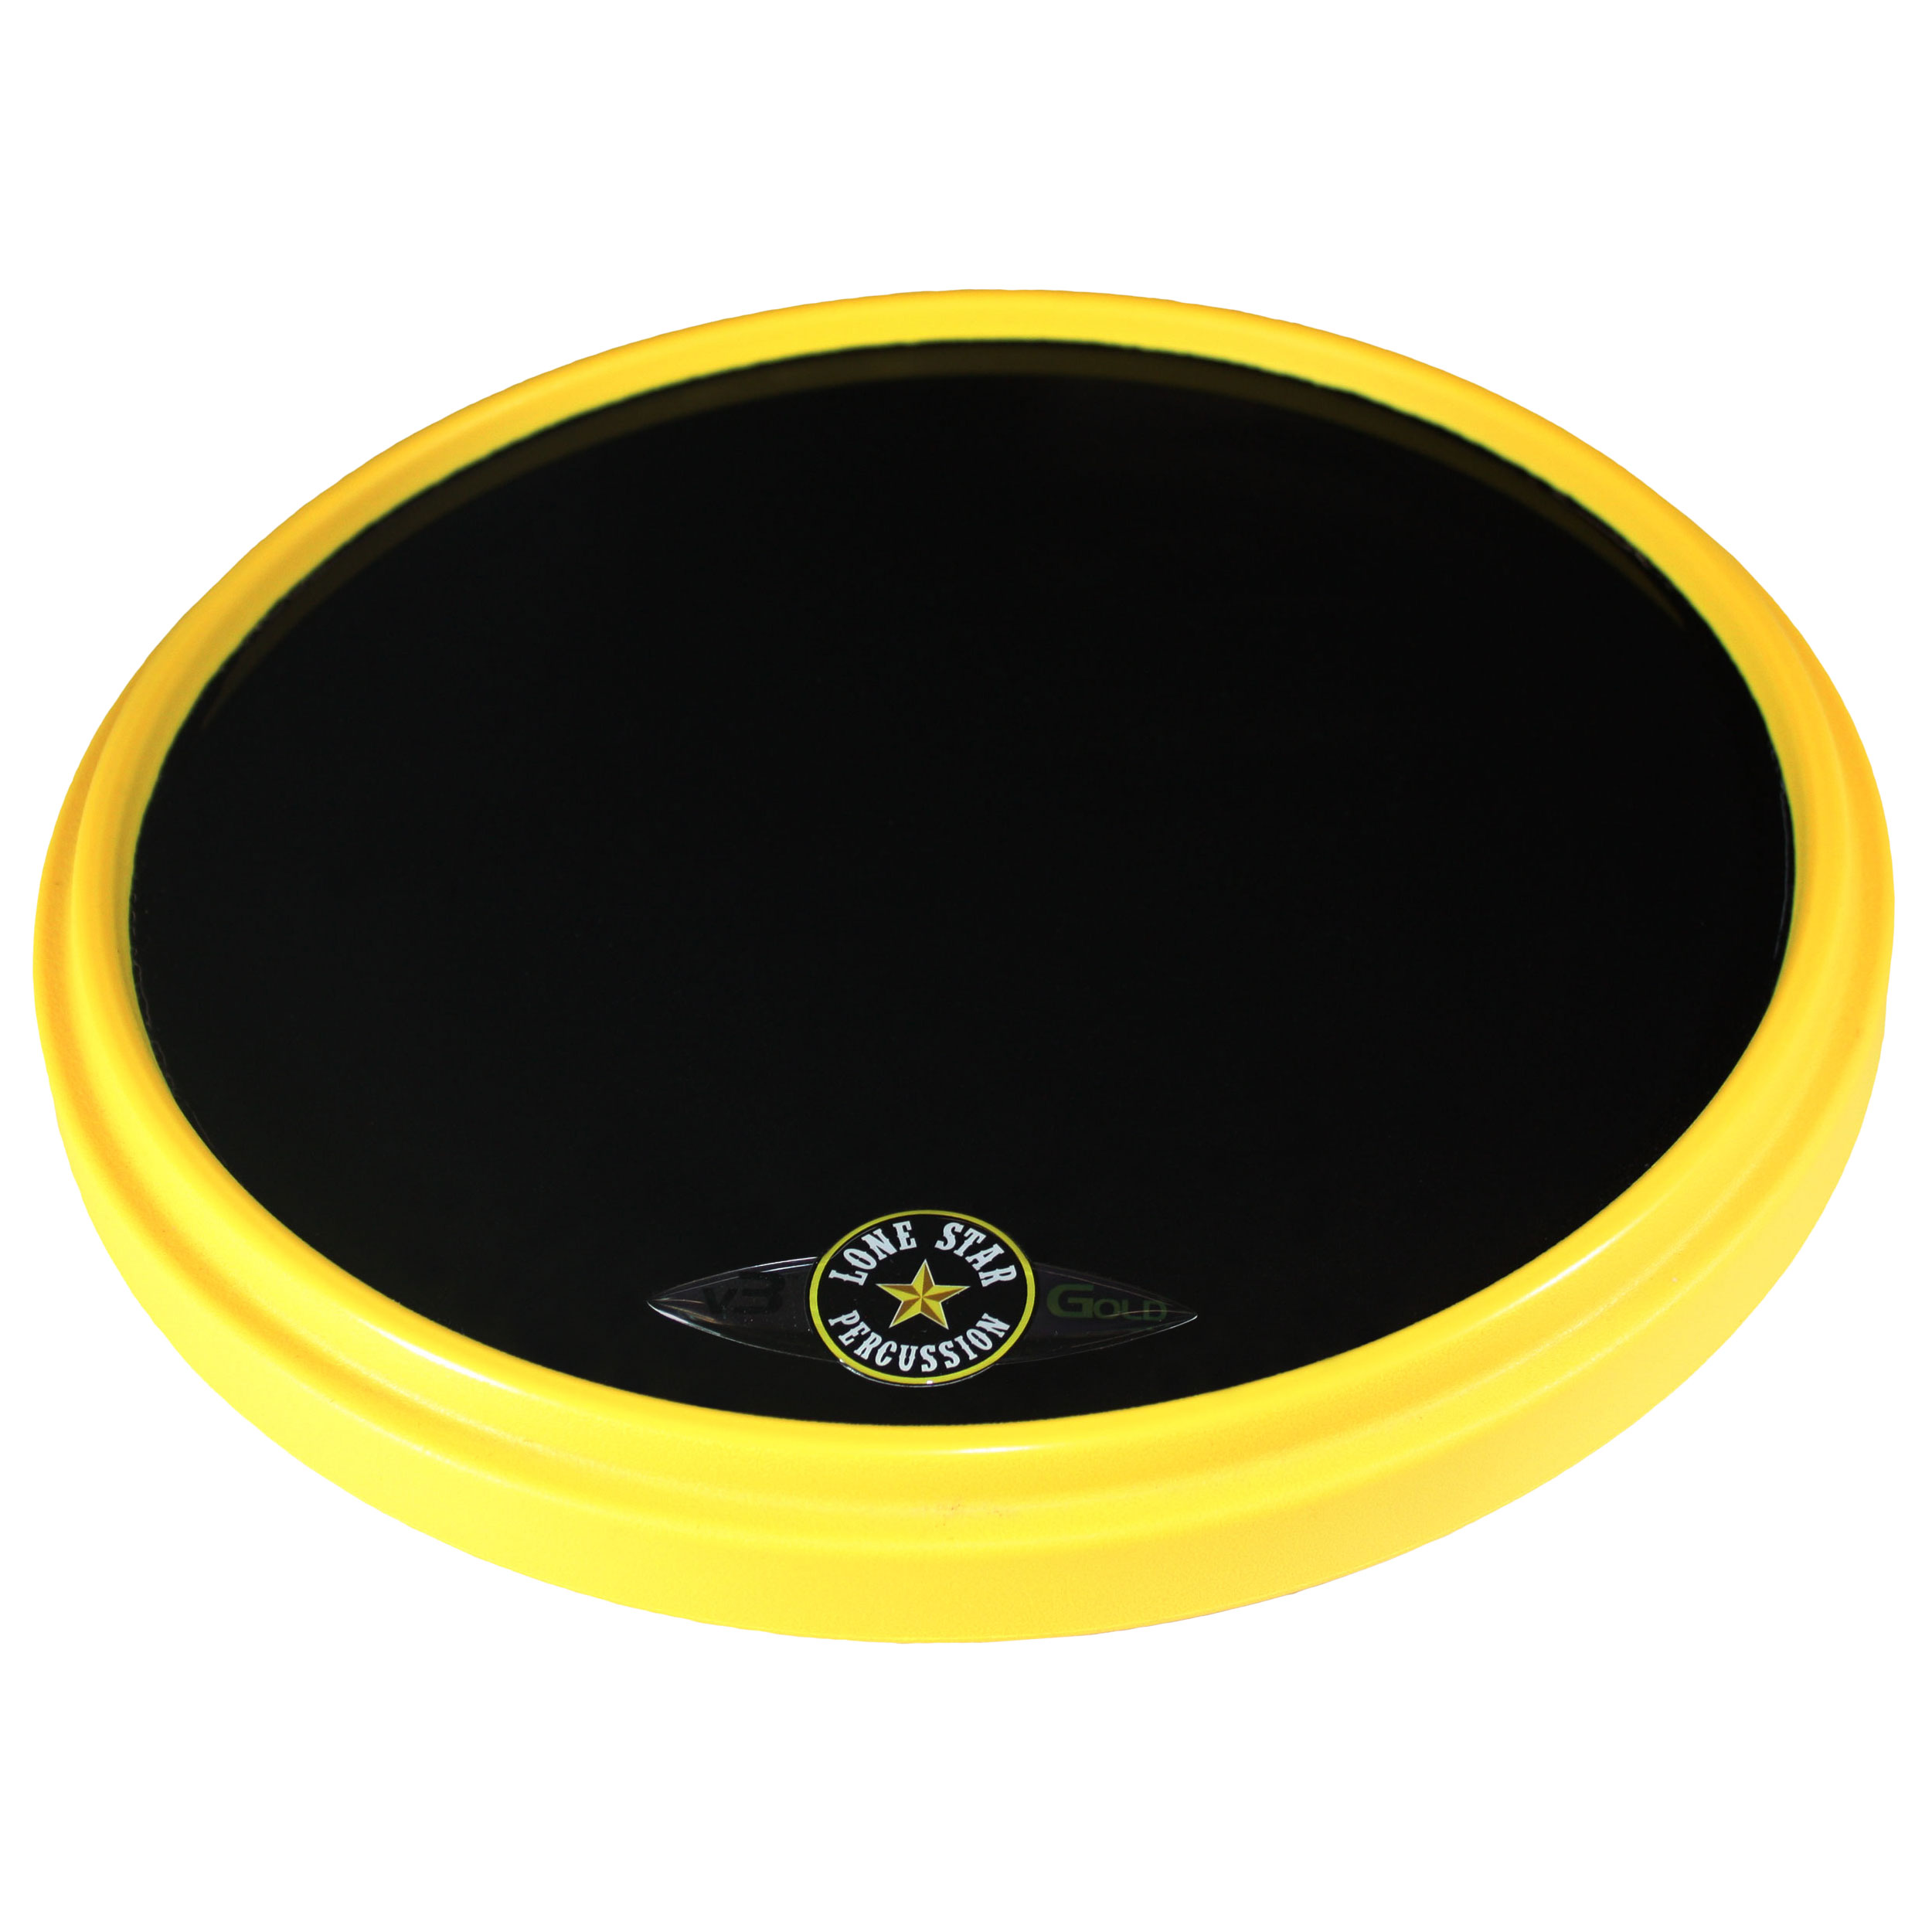 Lone Star Percussion/Offworld Invader V3 GOLD Practice Pad